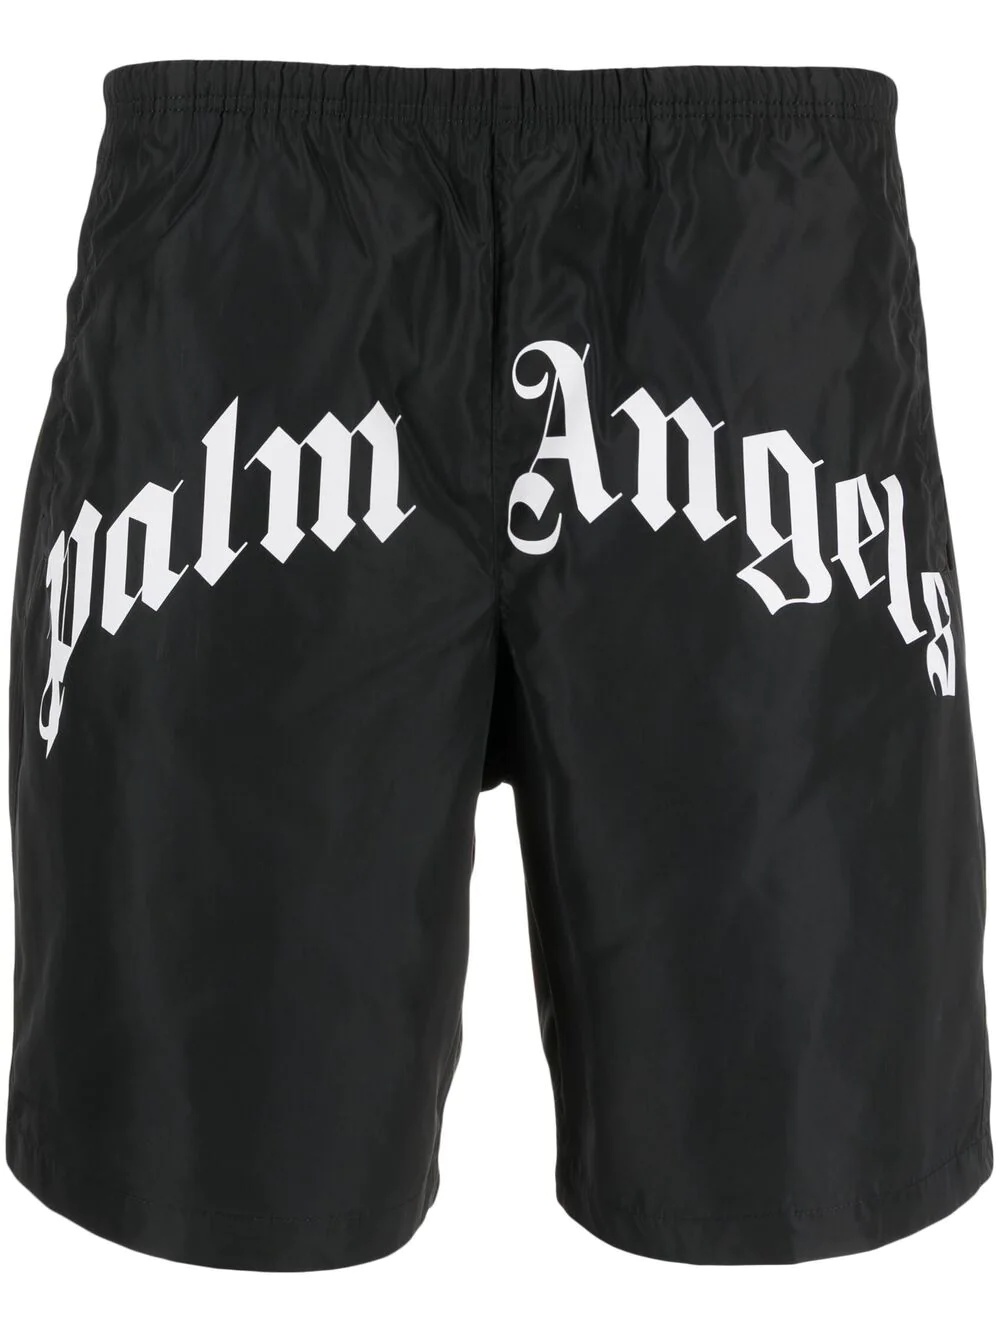 PALM ANGELS Black Swimsuit With Maxi Front Logo